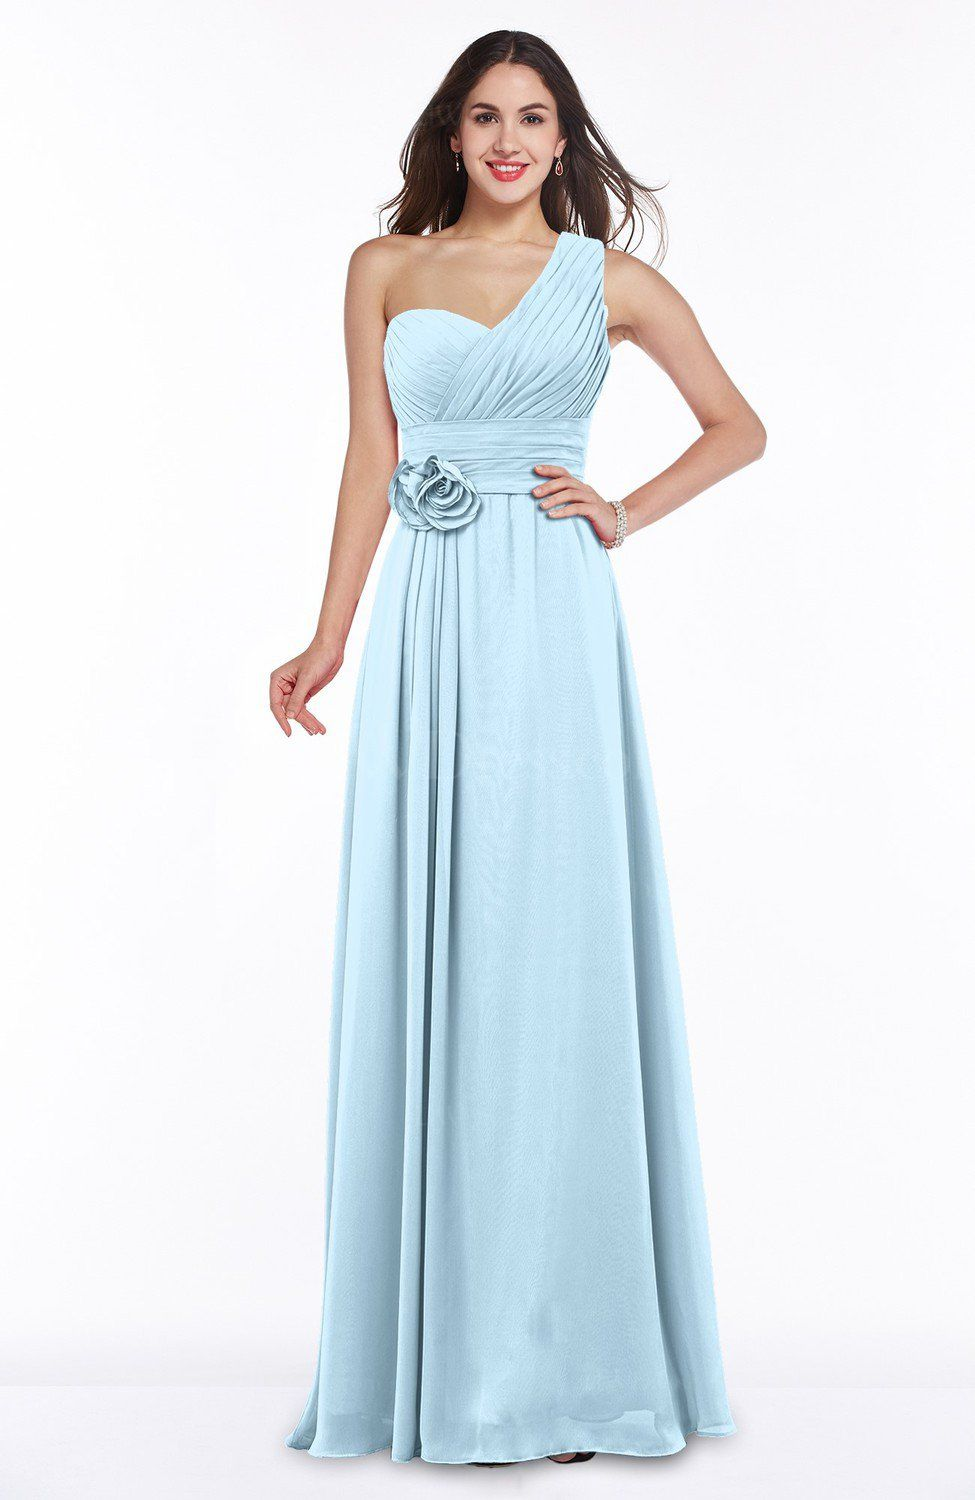 Ice blue bridesmaid dresses uk google search bridesmaid ice blue bridesmaid dresses uk google search ombrellifo Images